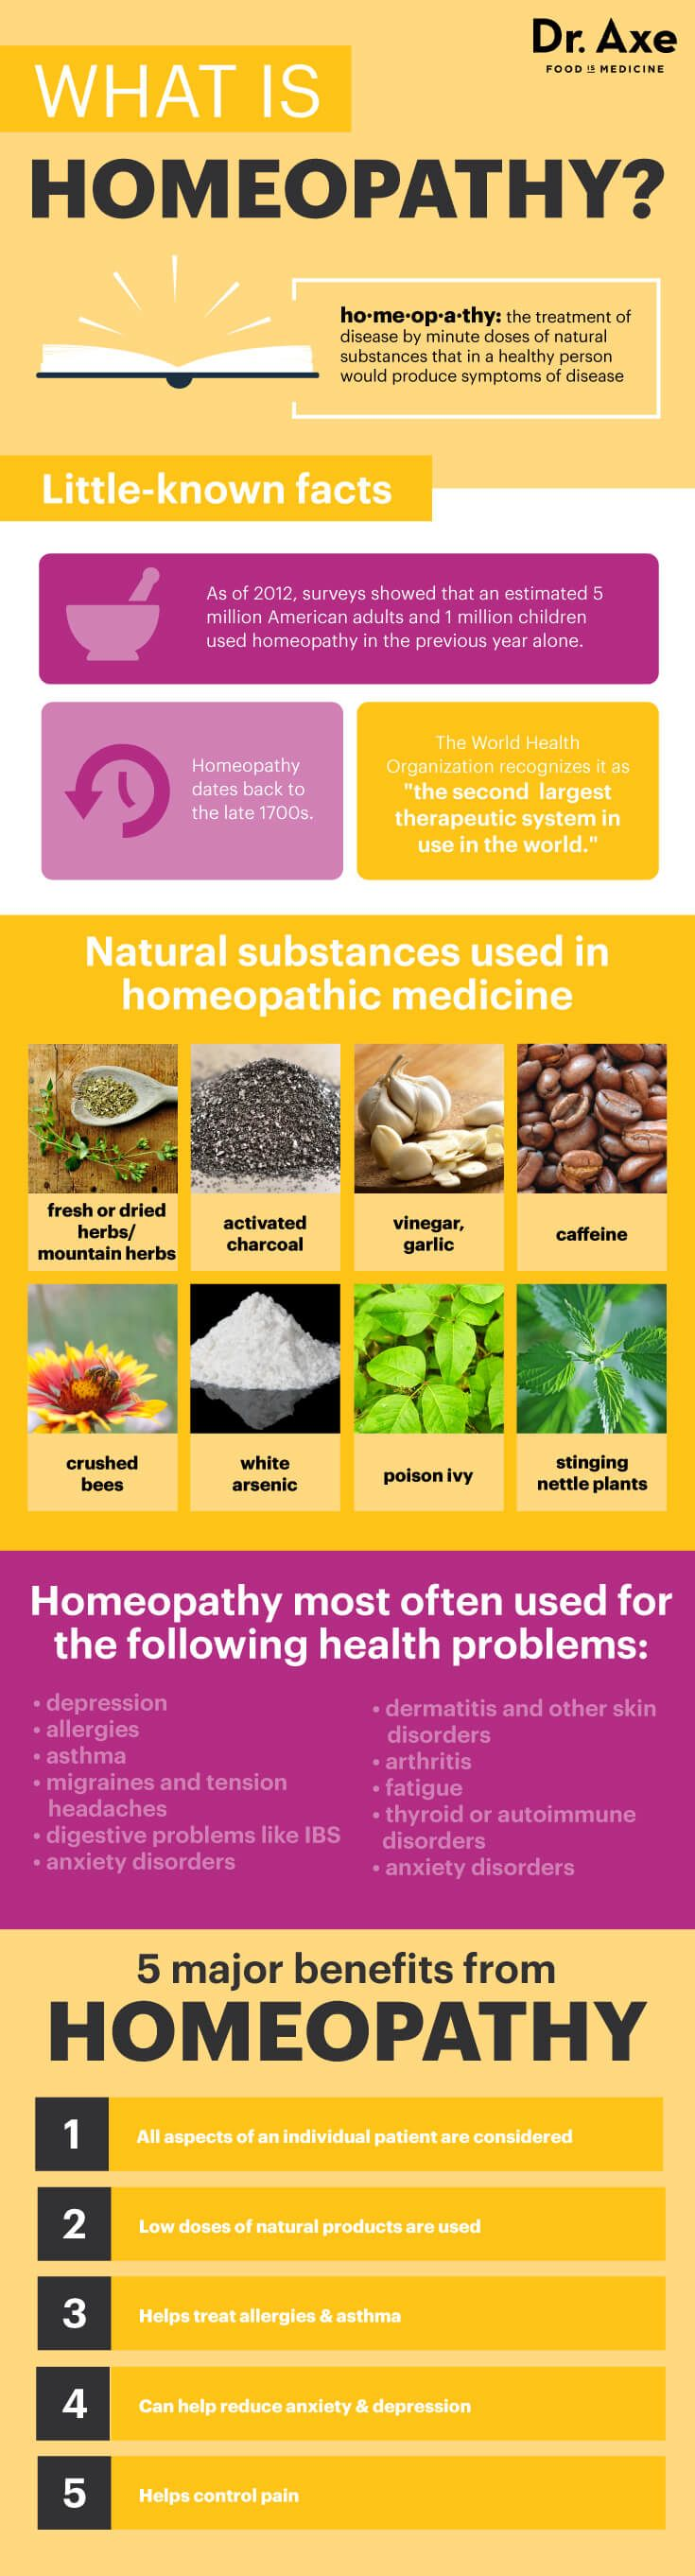 What is homeopathy? - Dr. Axe http://www.draxe.com #health #holistic #natural